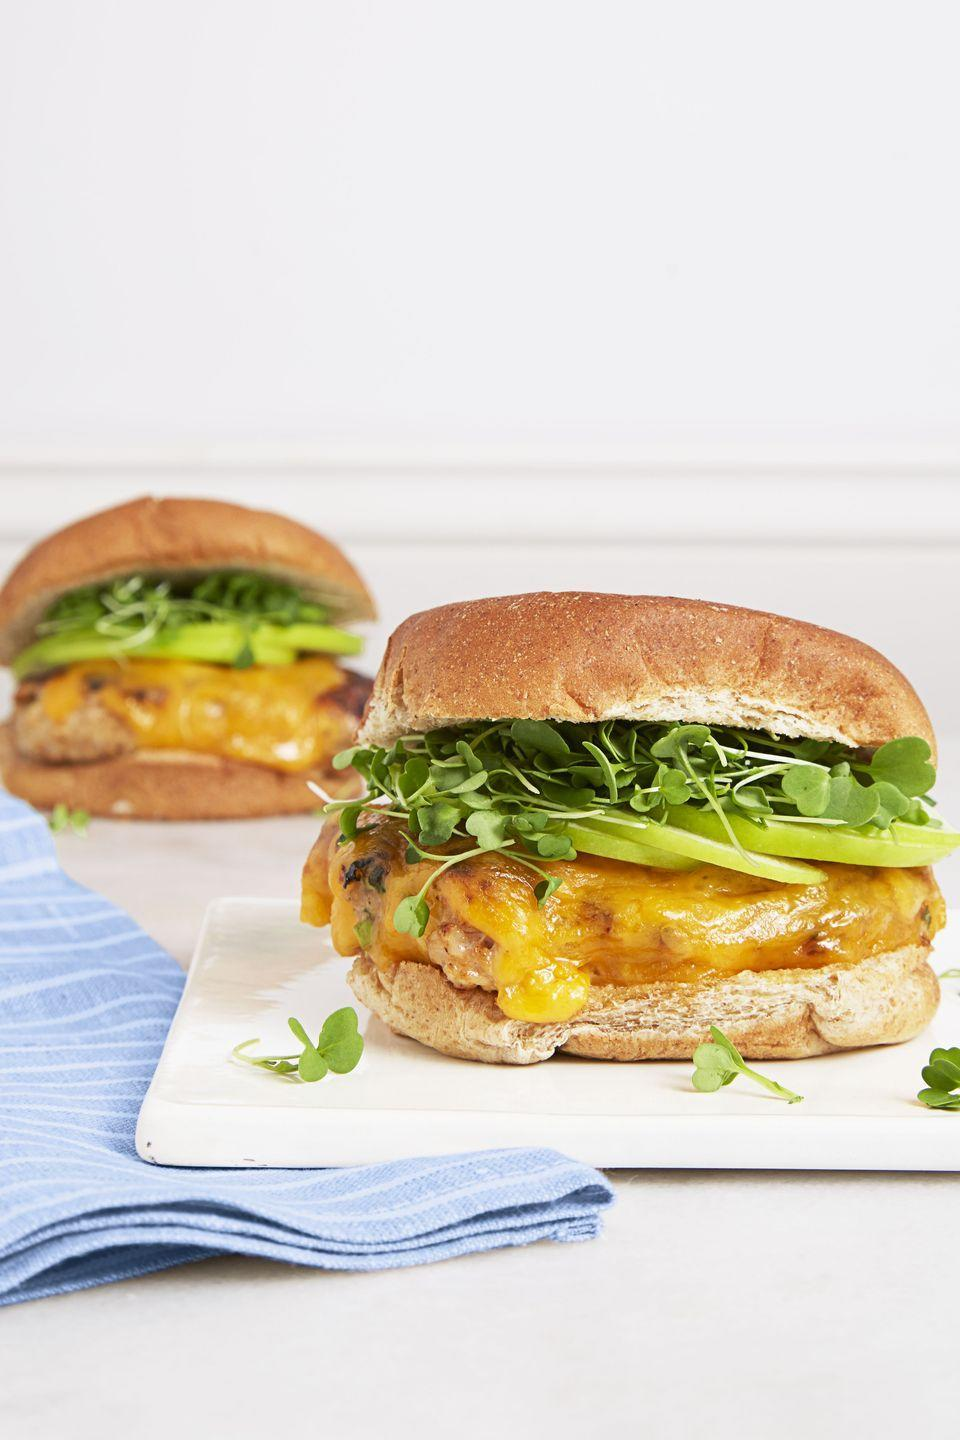 """<p>Go lean with chicken patties, then indulge by smothering them with cheese and BBQ sauce — because that's how you do balance.</p><p><em><a href=""""https://www.goodhousekeeping.com/food-recipes/a37552/bbq-chicken-cheddar-burgers-recipe/"""" rel=""""nofollow noopener"""" target=""""_blank"""" data-ylk=""""slk:Get the recipe for BBQ Chicken & Cheddar Burgers »"""" class=""""link rapid-noclick-resp"""">Get the recipe for BBQ Chicken & Cheddar Burgers » </a></em></p>"""